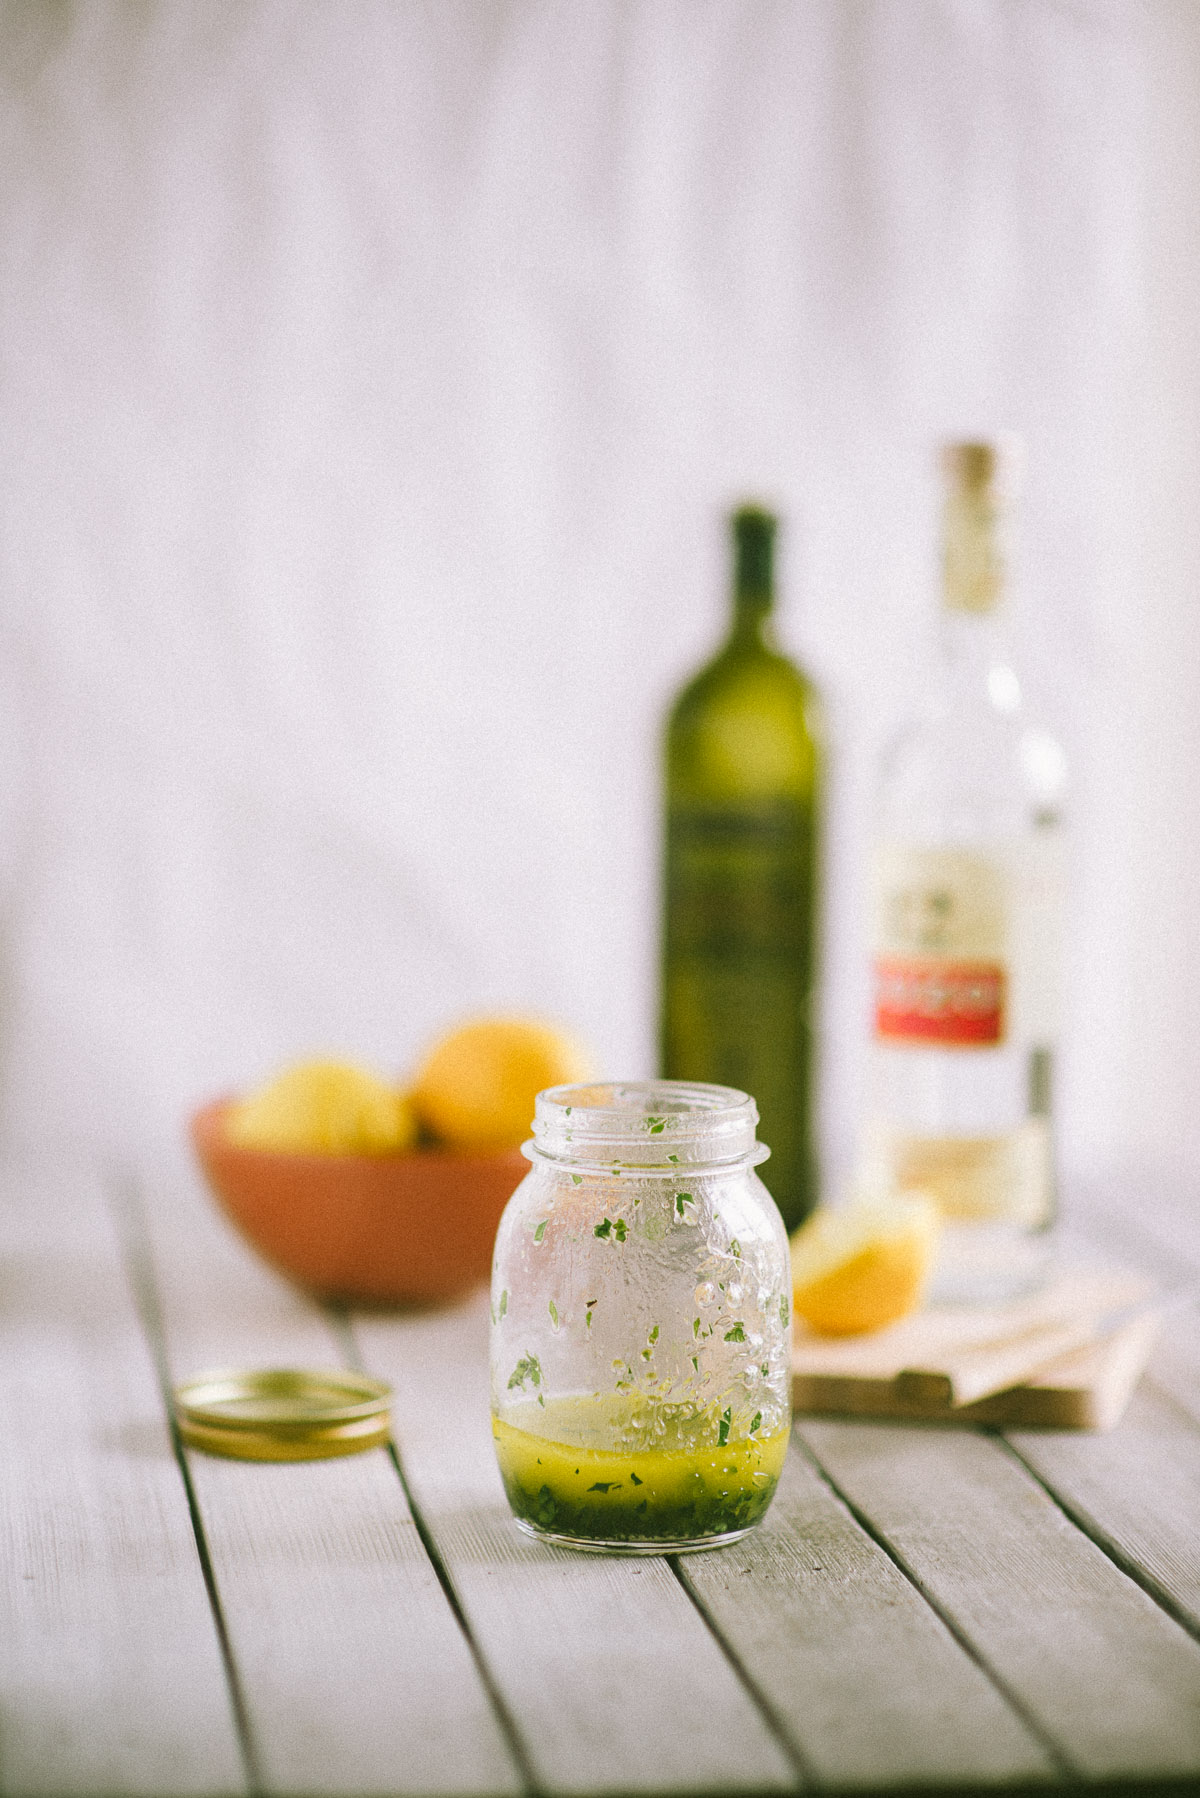 a jar of salad dressing made suing ouzo on a table